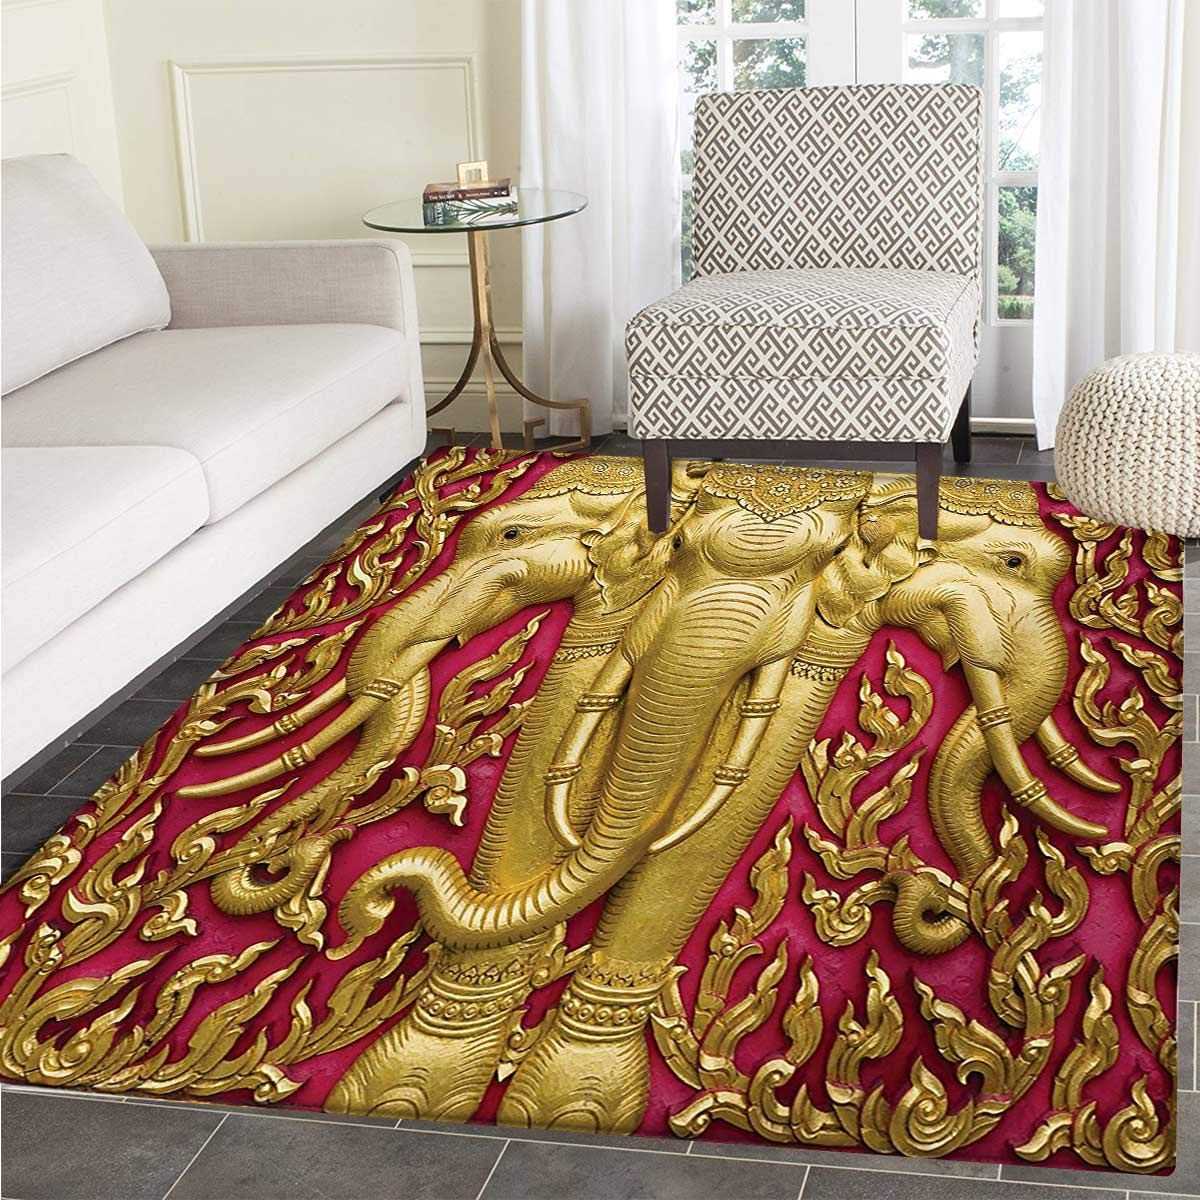 Elephant Bath Mat tub Yellow Toned Elephant Motif on Door Thai Temple Spirituality Statue Classic Door Mats Inside Bathroom Mat Non Slip Backing 30''x40'' Fuchsia Mustard